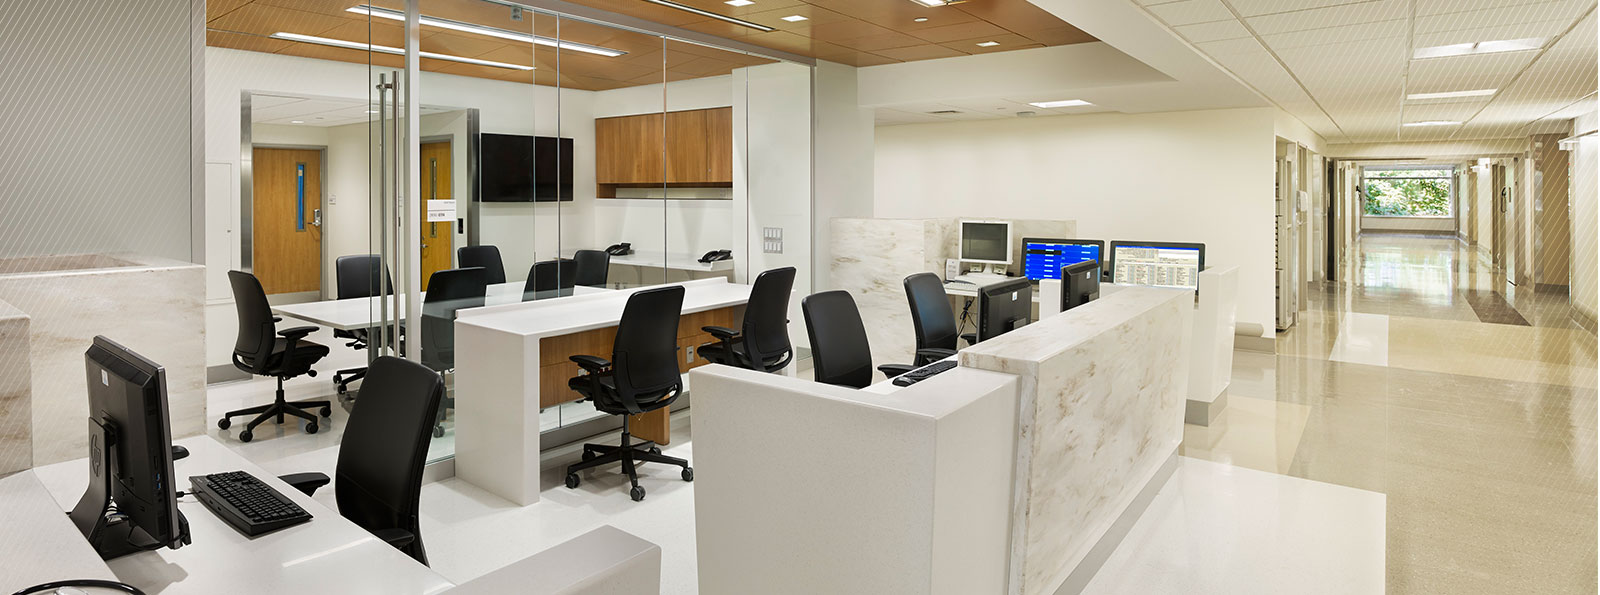 Spine Surgery Step Down Unit Array Architects